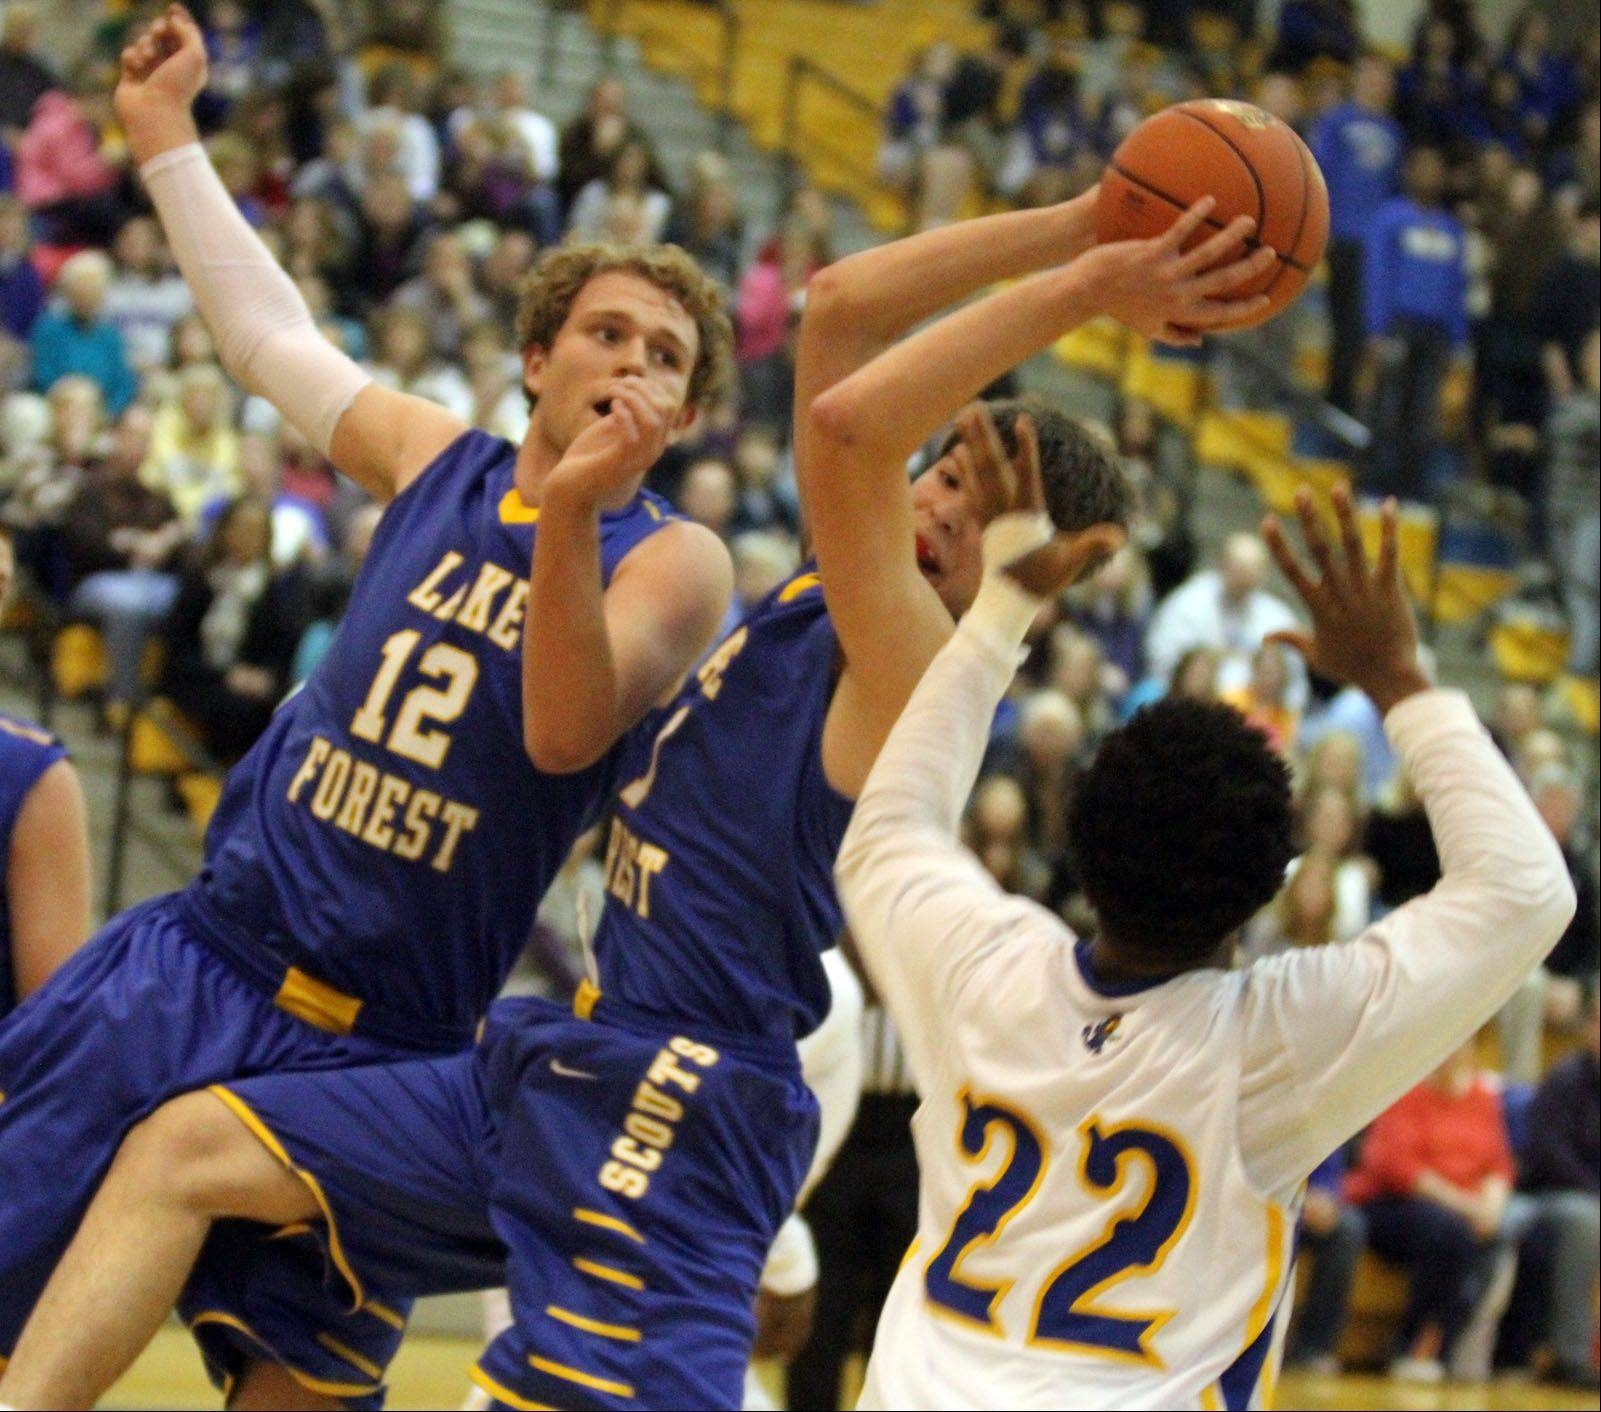 Images from the Lake Forest at Warren boys basketball game Friday, Dec. 14 in Gurnee.